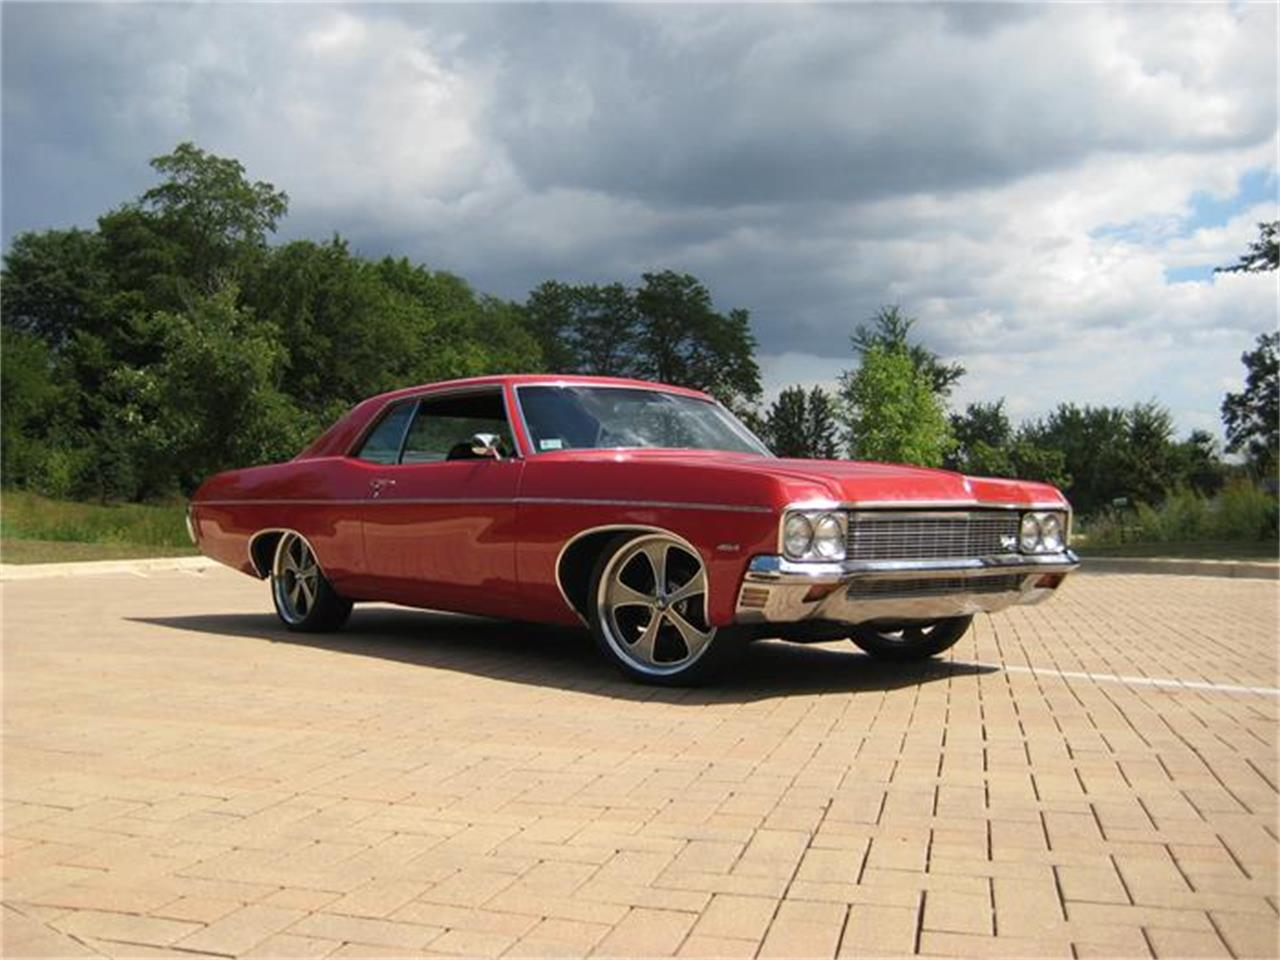 Large Picture of Classic 1970 Chevrolet Impala located in Illinois Offered by Classic Auto Haus - F45R